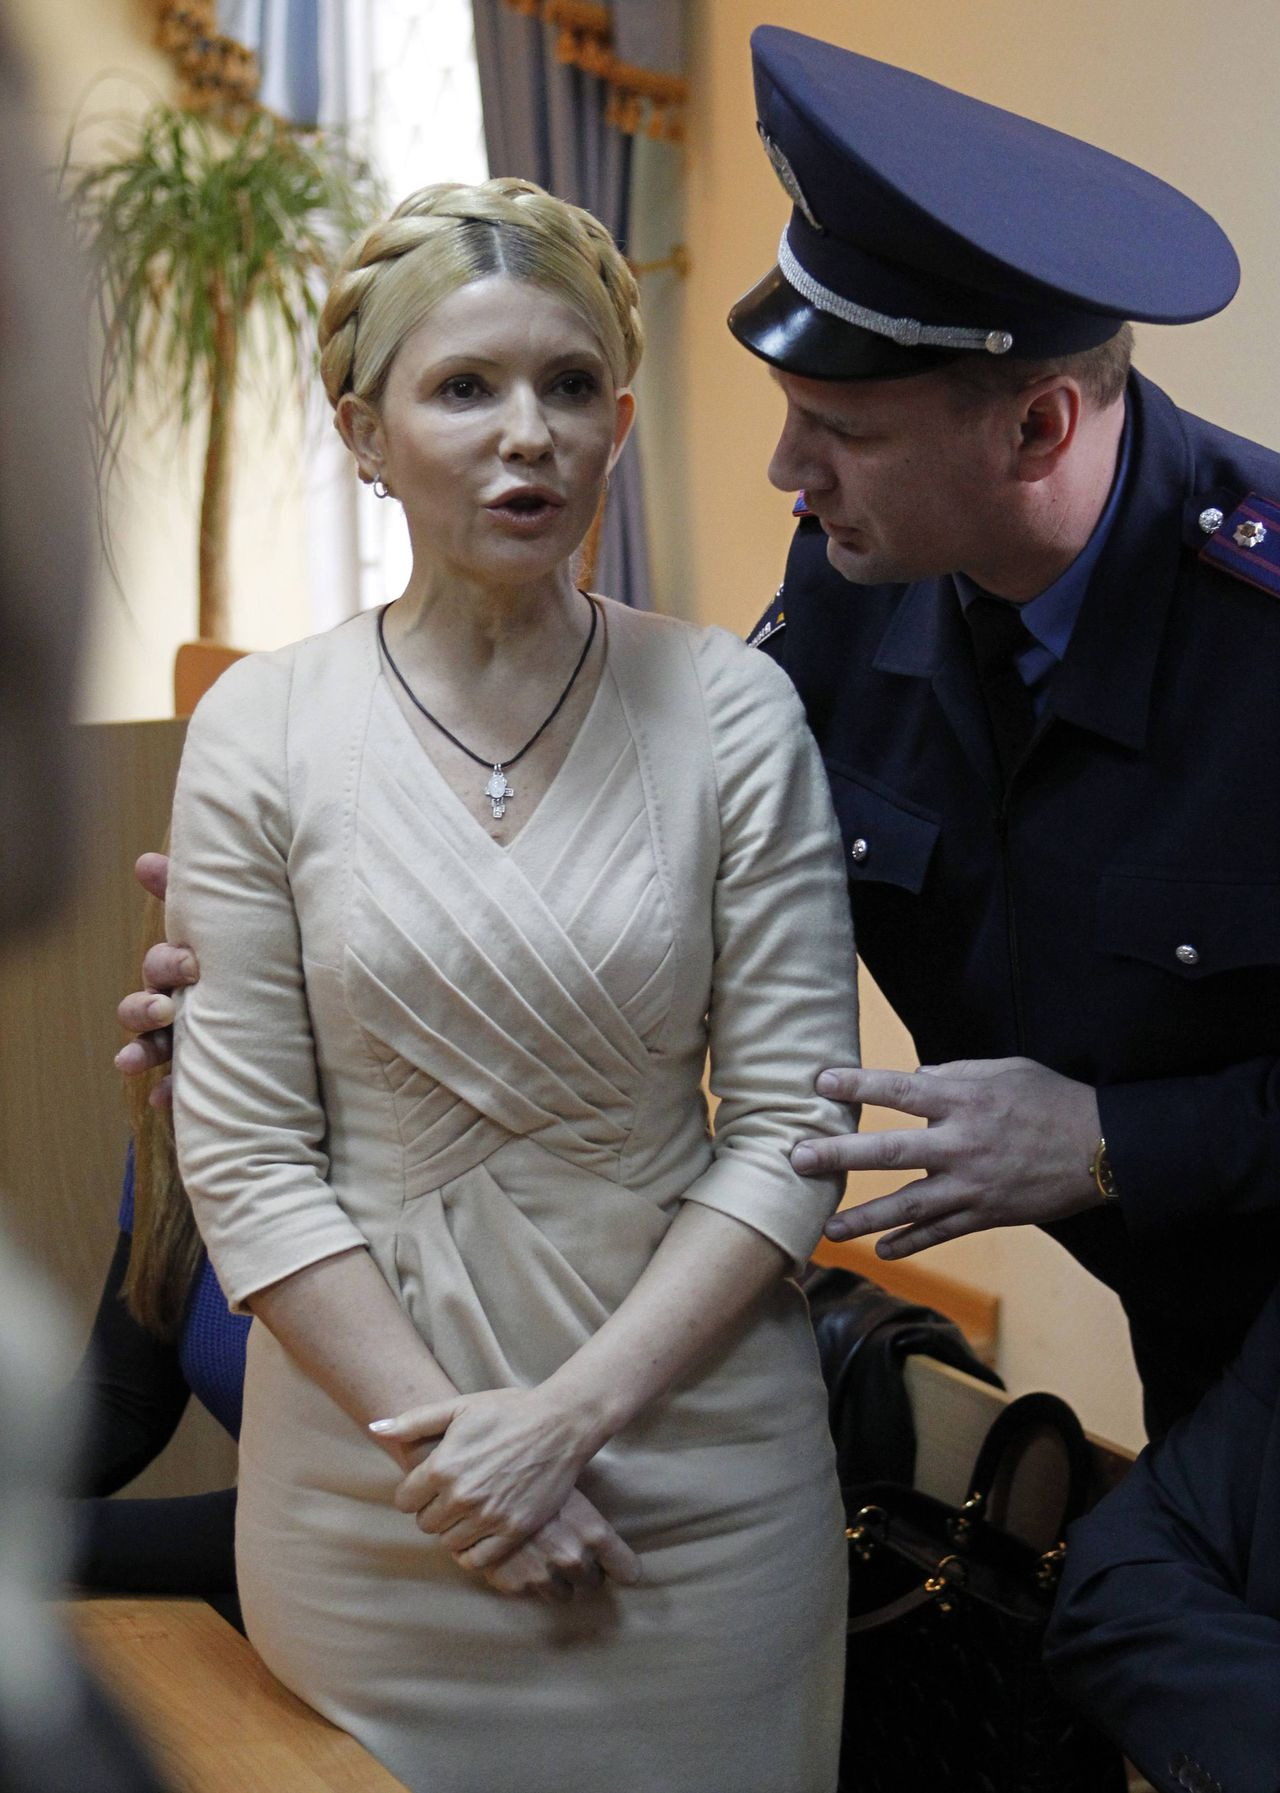 An Interior Ministry officer asks Ukrainian ex-prime minister Yulia Tymoshenko (L) to keep quiet while judge Rodion Kireyev reads the verdict during a session at the Pecherskiy district court in Kiev October 11, 2011. A Ukrainian court on Tuesday sentenced former prime minister Yulia Tymoshenko to seven years in prison for abuse of office in relation to a 2009 gas deal with Russia that she brokered, a case regarded widely in the West as politically orchestrated. REUTERS/Gleb Garanich (UKRAINE - Tags: CRIME LAW POLITICS)